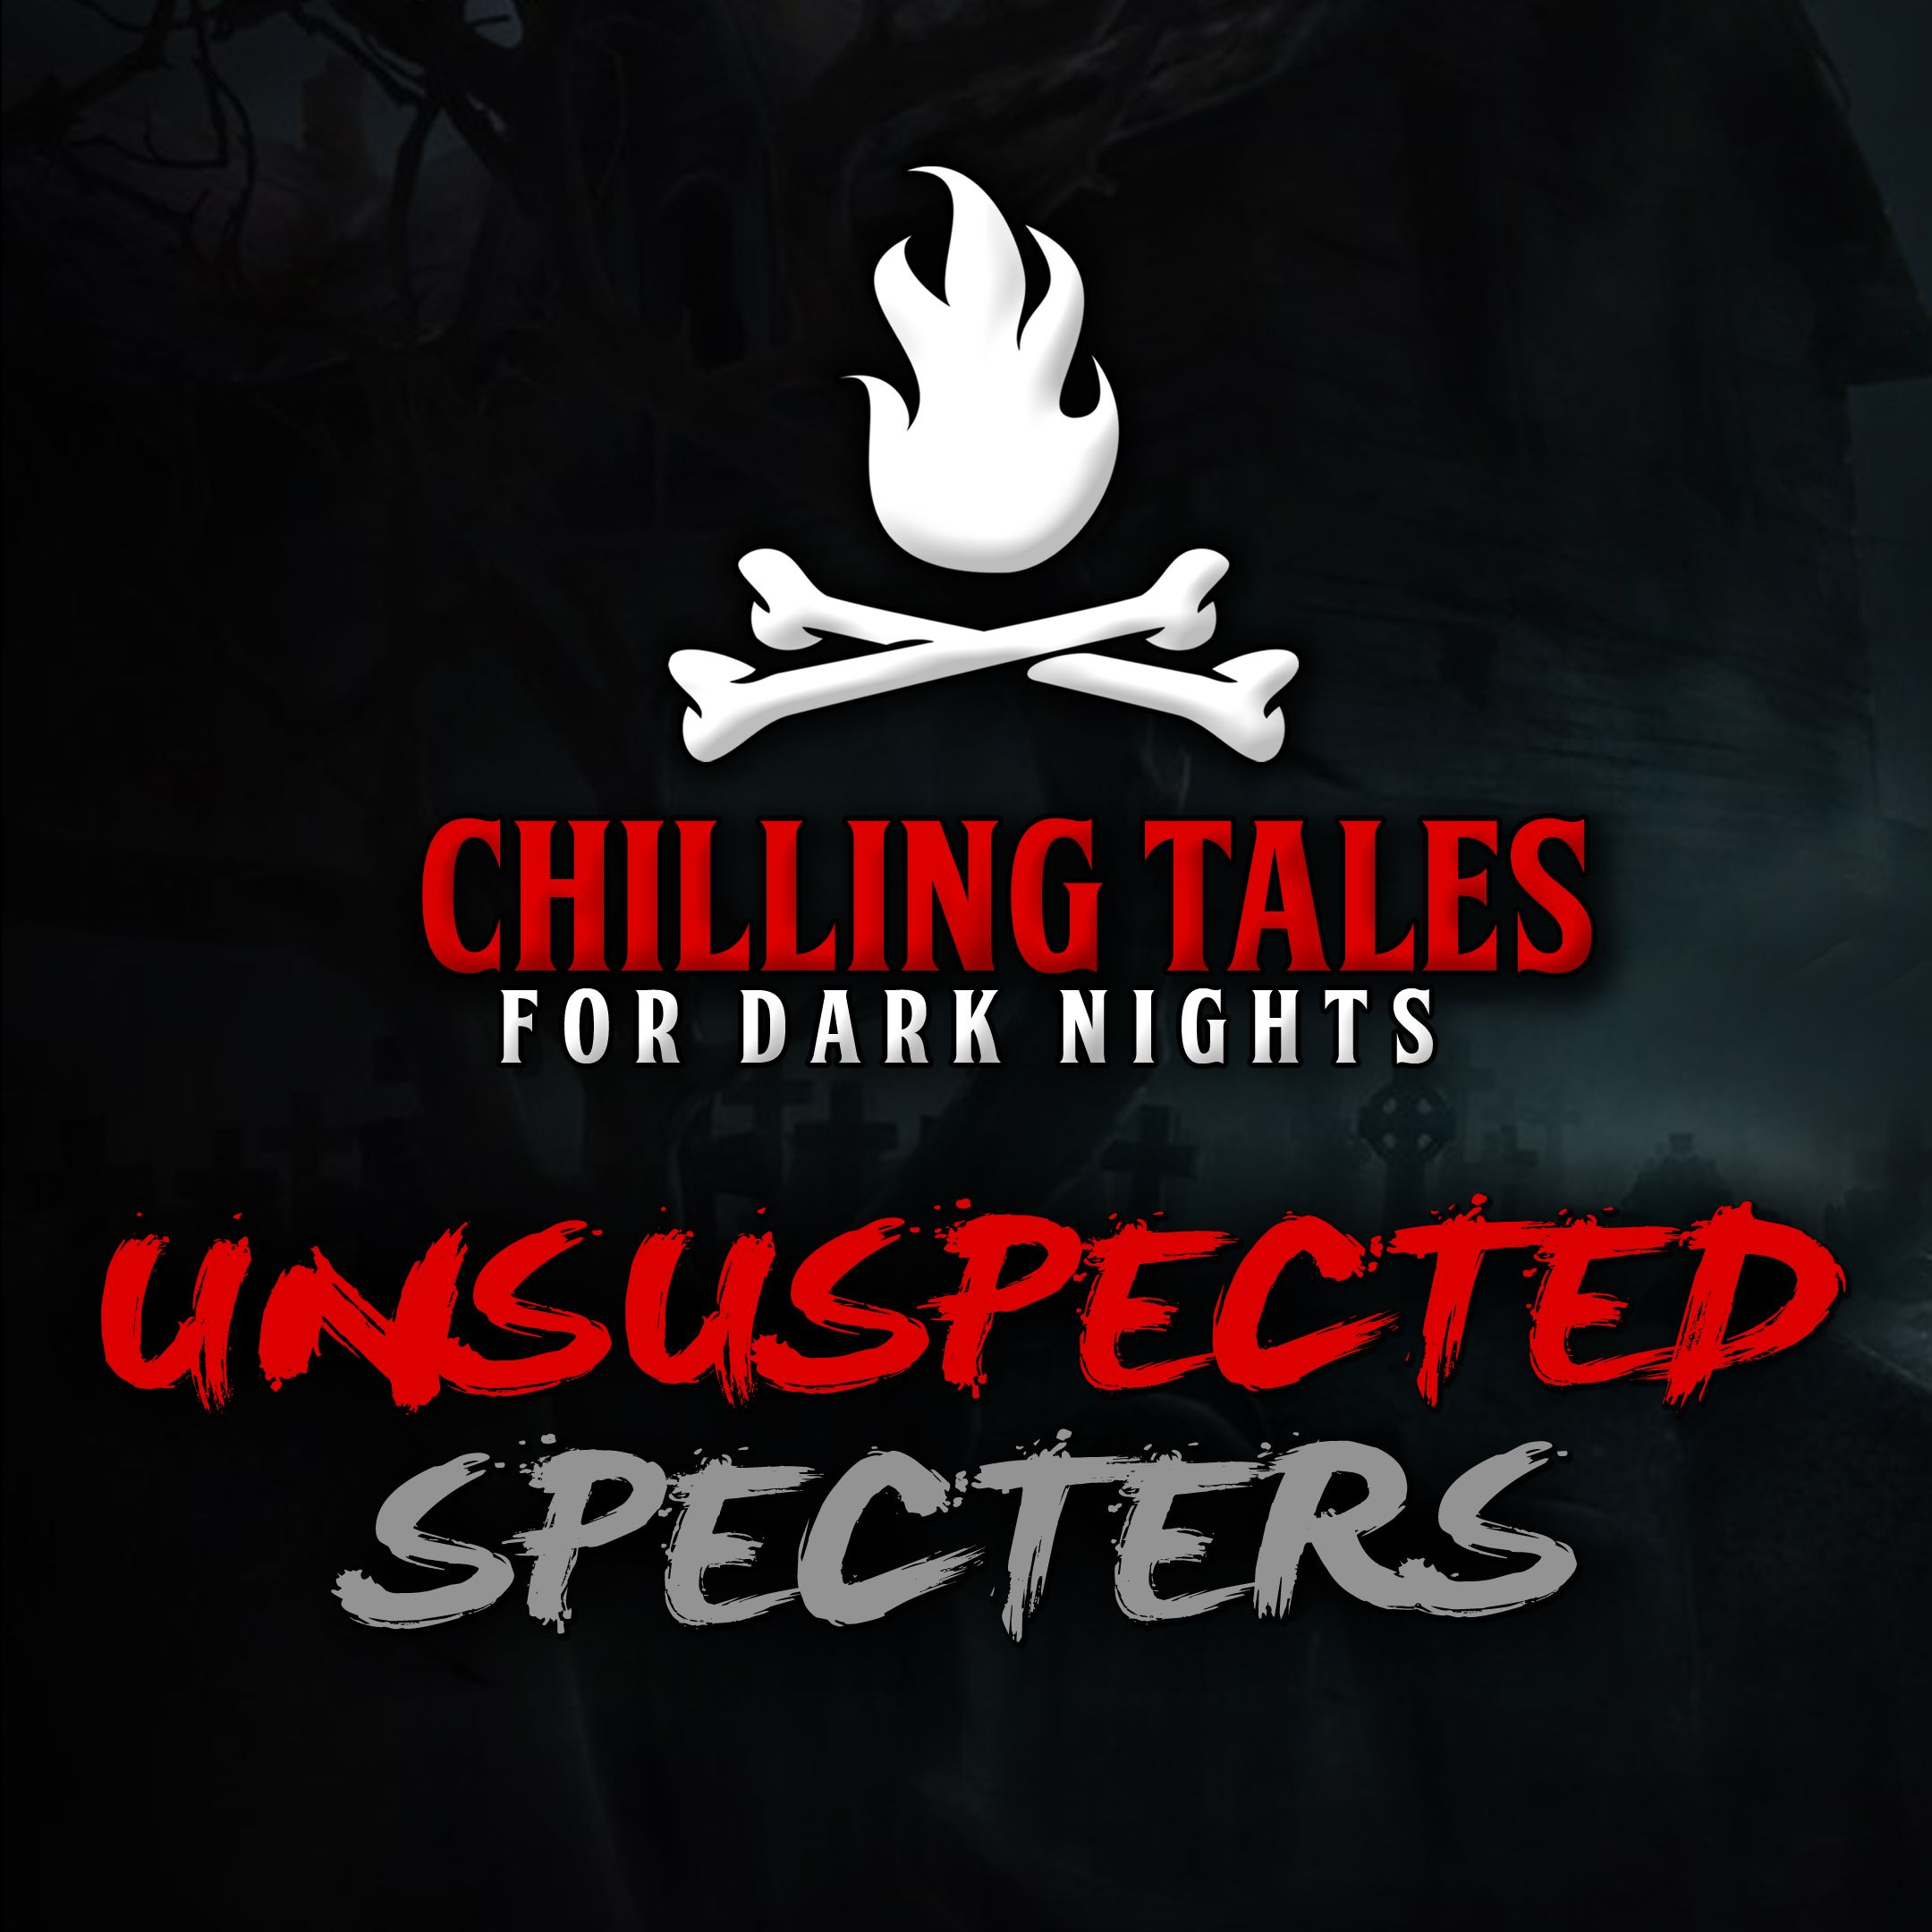 83: Unsuspected Specters – Chilling Tales for Dark Nights